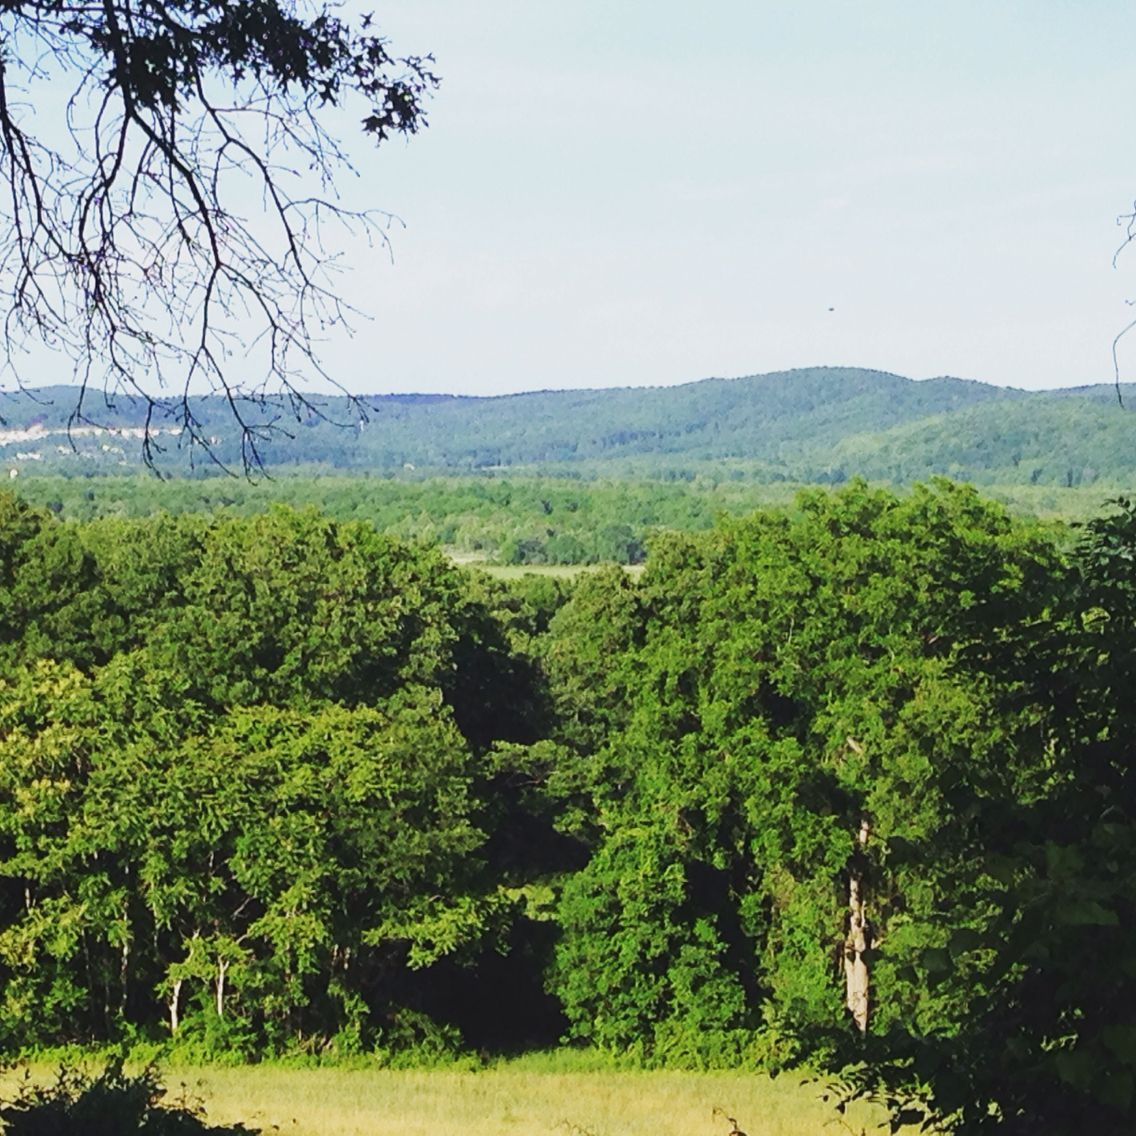 Imagine this was your view! Took from a deck of a home I viewed with clients in NJ.